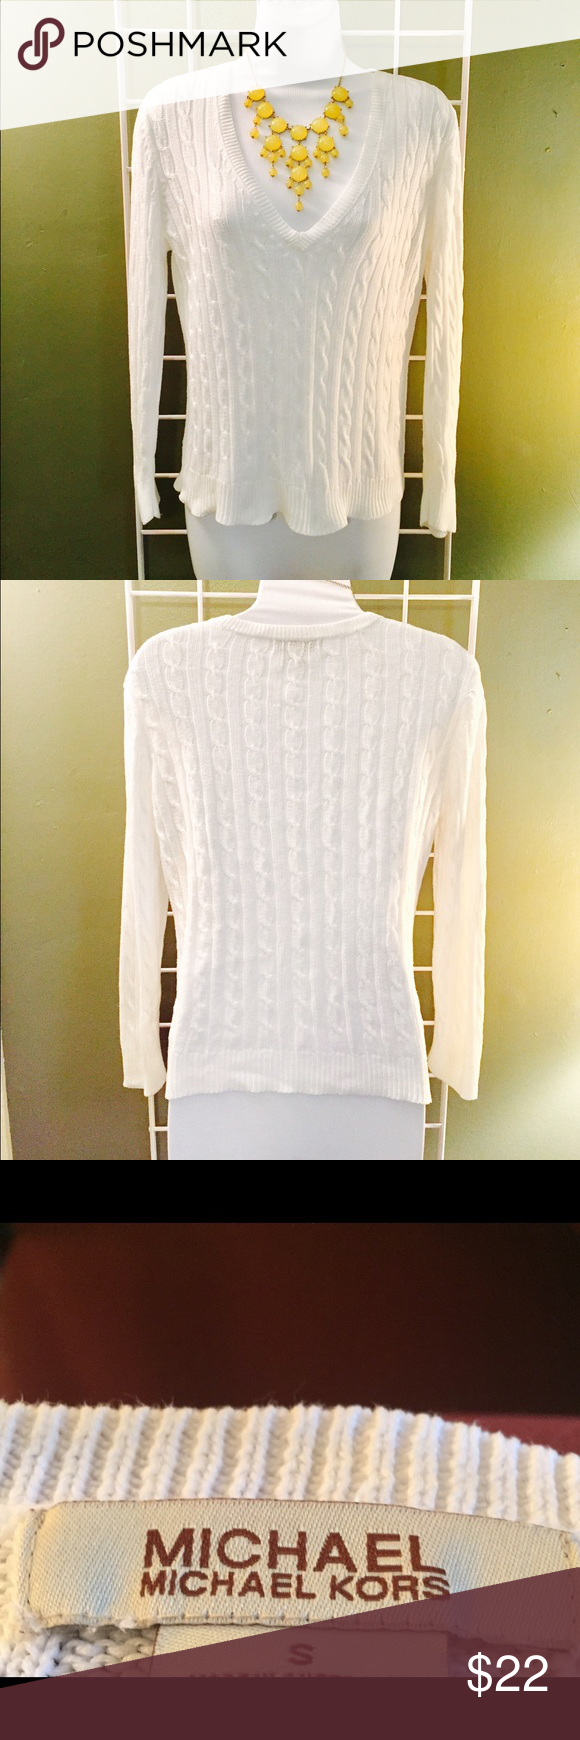 Michael Kor Sweater Michael Kor Sweater. Beautiful white sweater ...